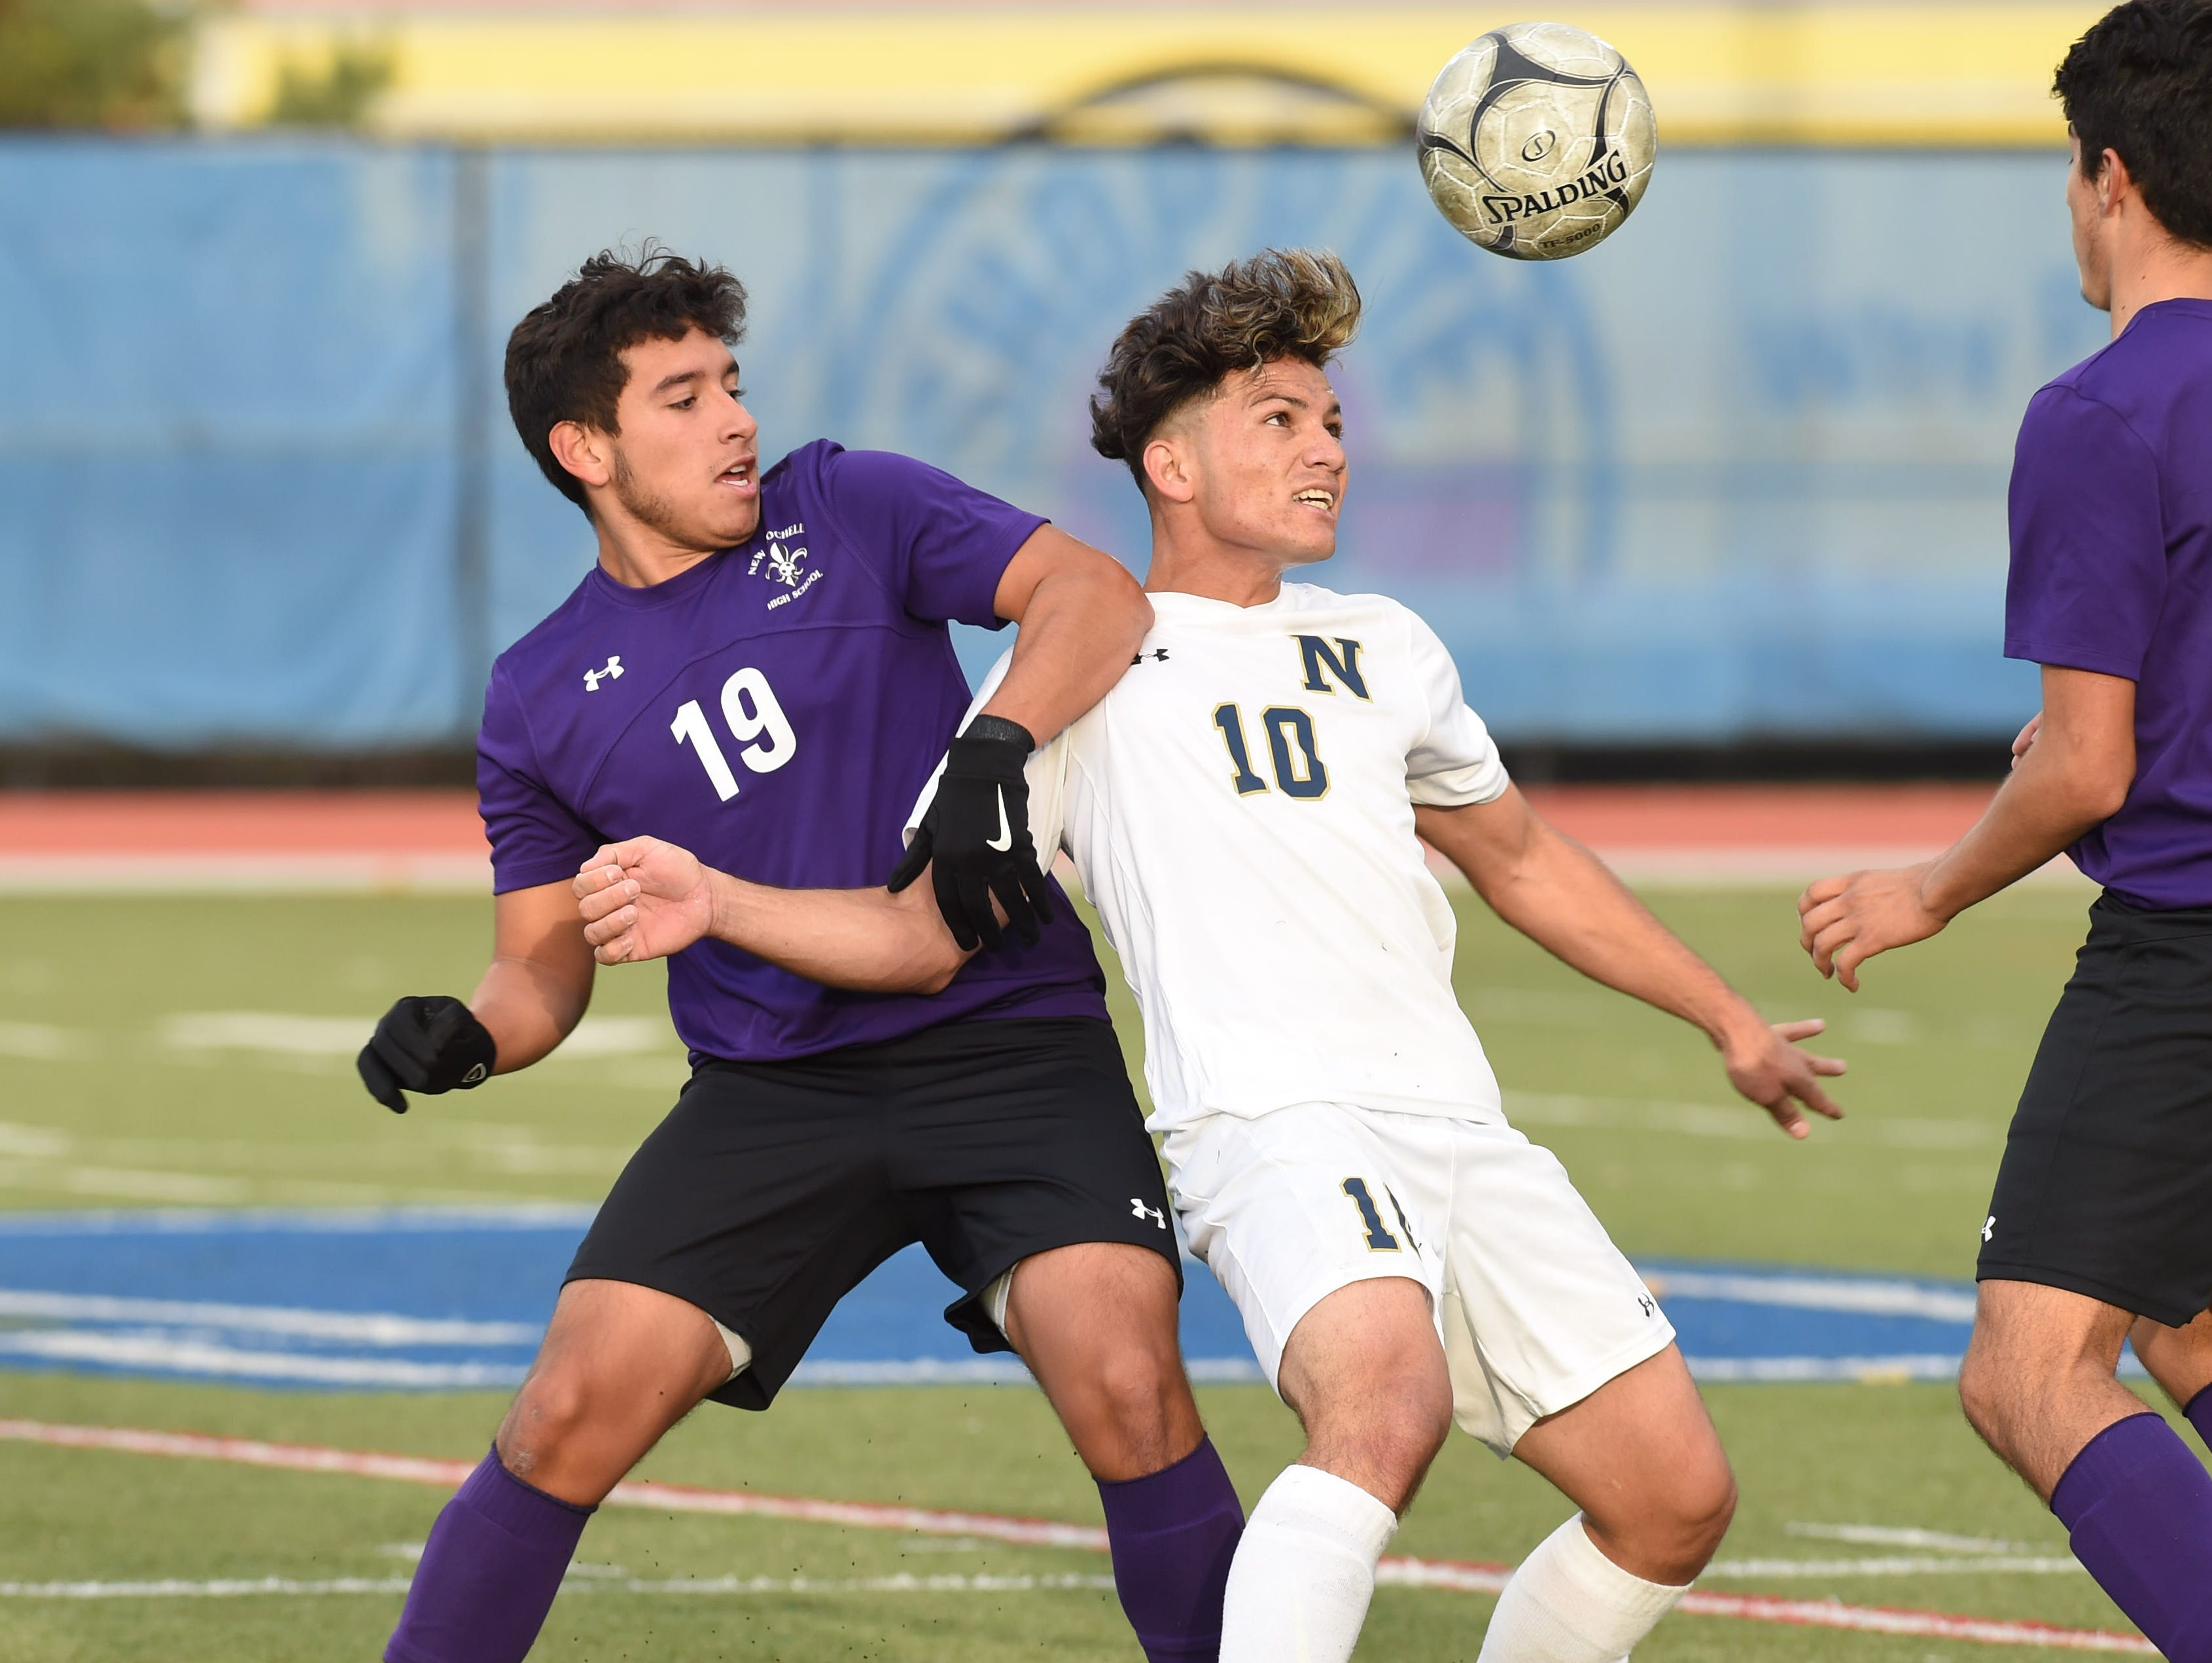 New Rochelle's Cristian Torres, left, and Newburgh's Jose Alvarez, right, fight for the ball during Saturday's Class AA regional final.